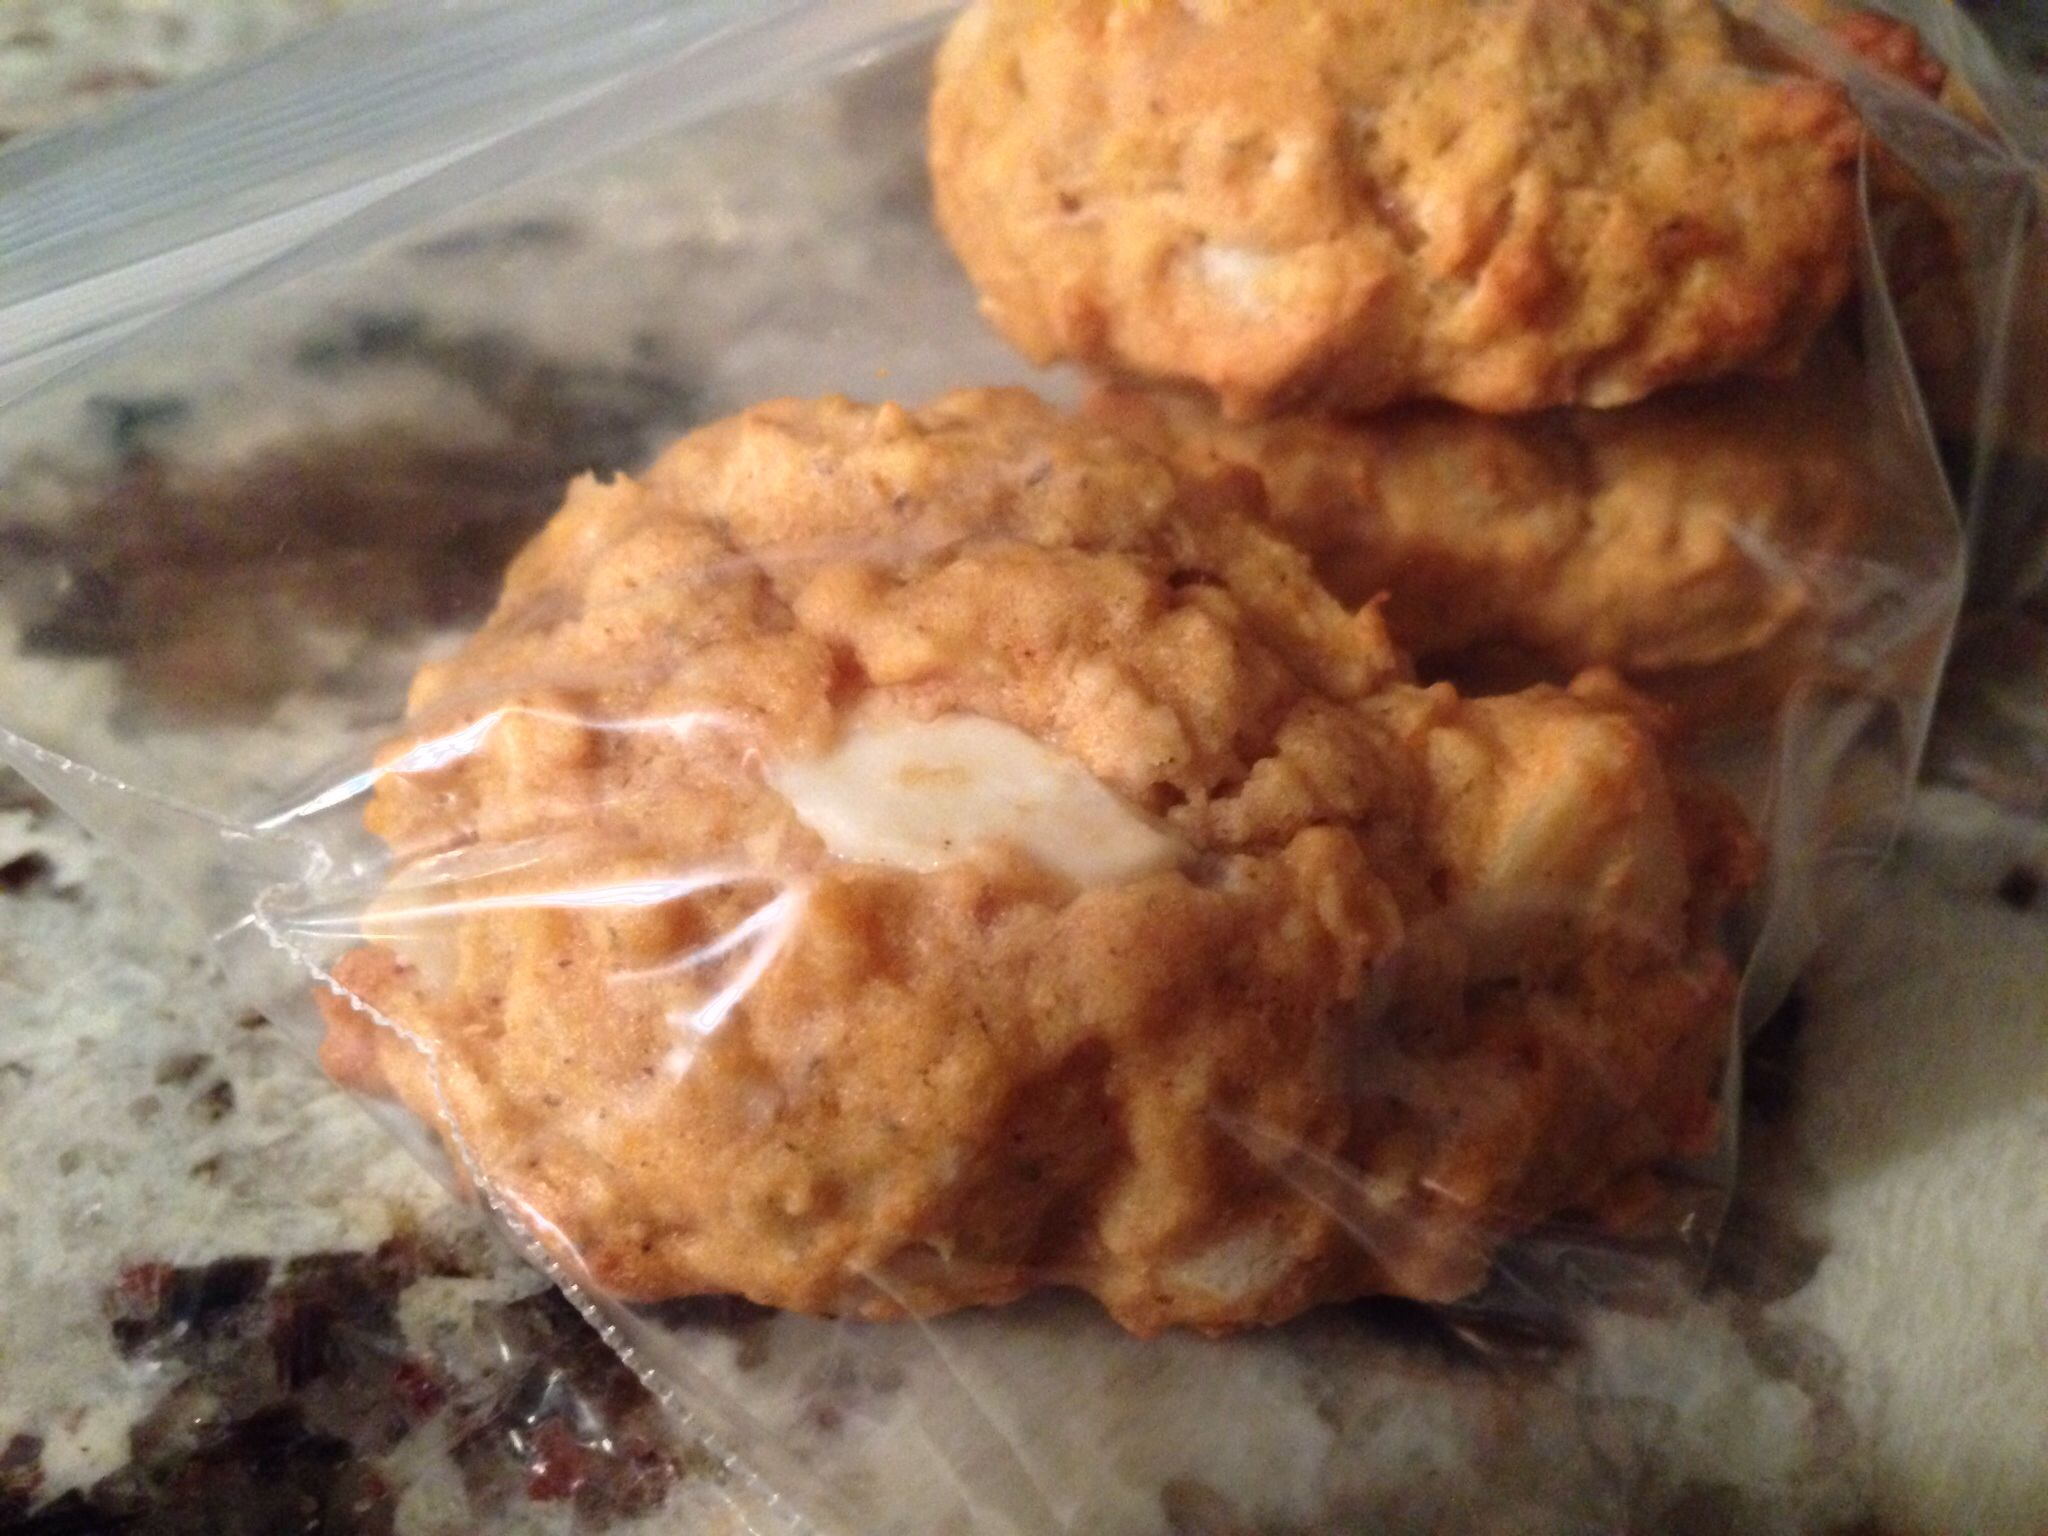 White Chocolate macadamia nut pumpkin cookies I baked - recipe from closet cooking. Very yummy